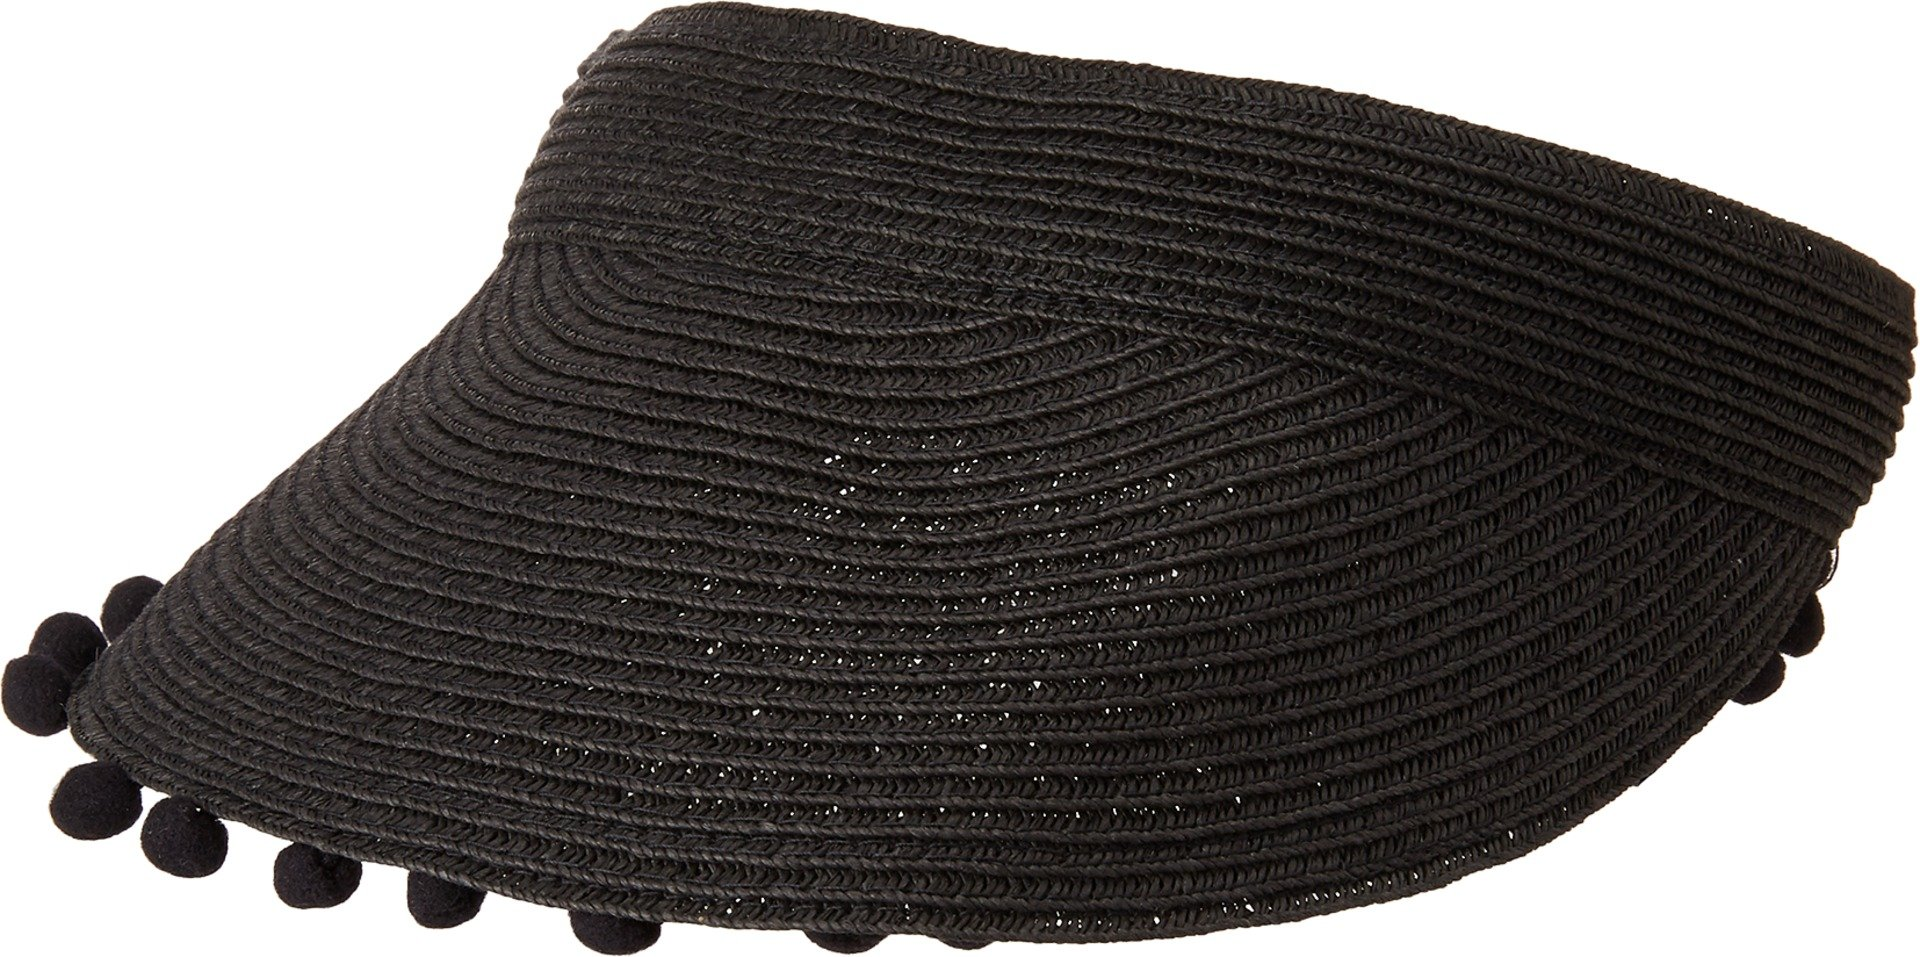 San Diego Hat Company Women's UBV045 Visor with Matching Color Pom and Adjustable Back Black One Size